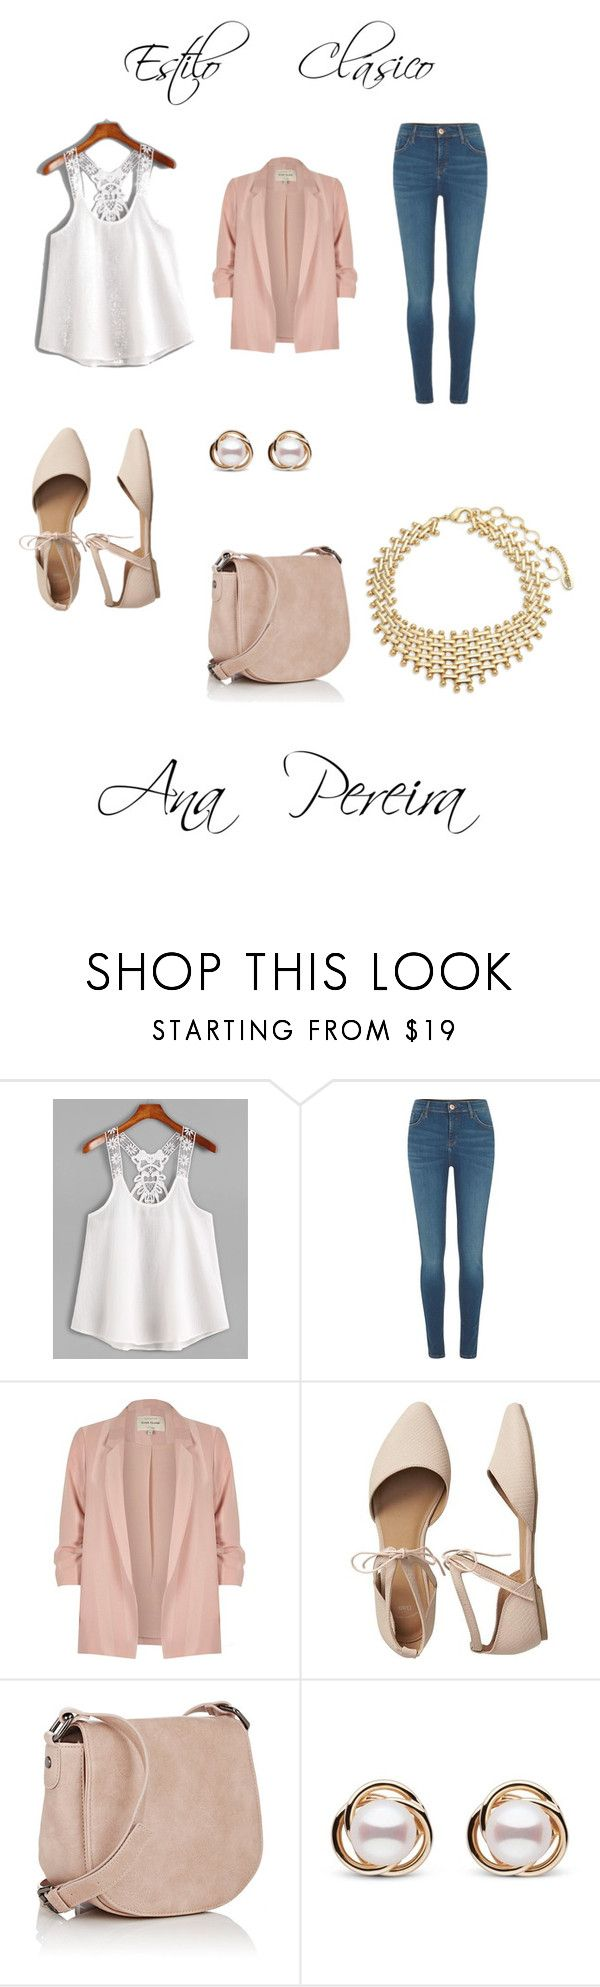 """Look elegante"" by anapereira-v on Polyvore featuring moda, River Island, Gap, Deux Lux, Trilogy y Amrita Singh"